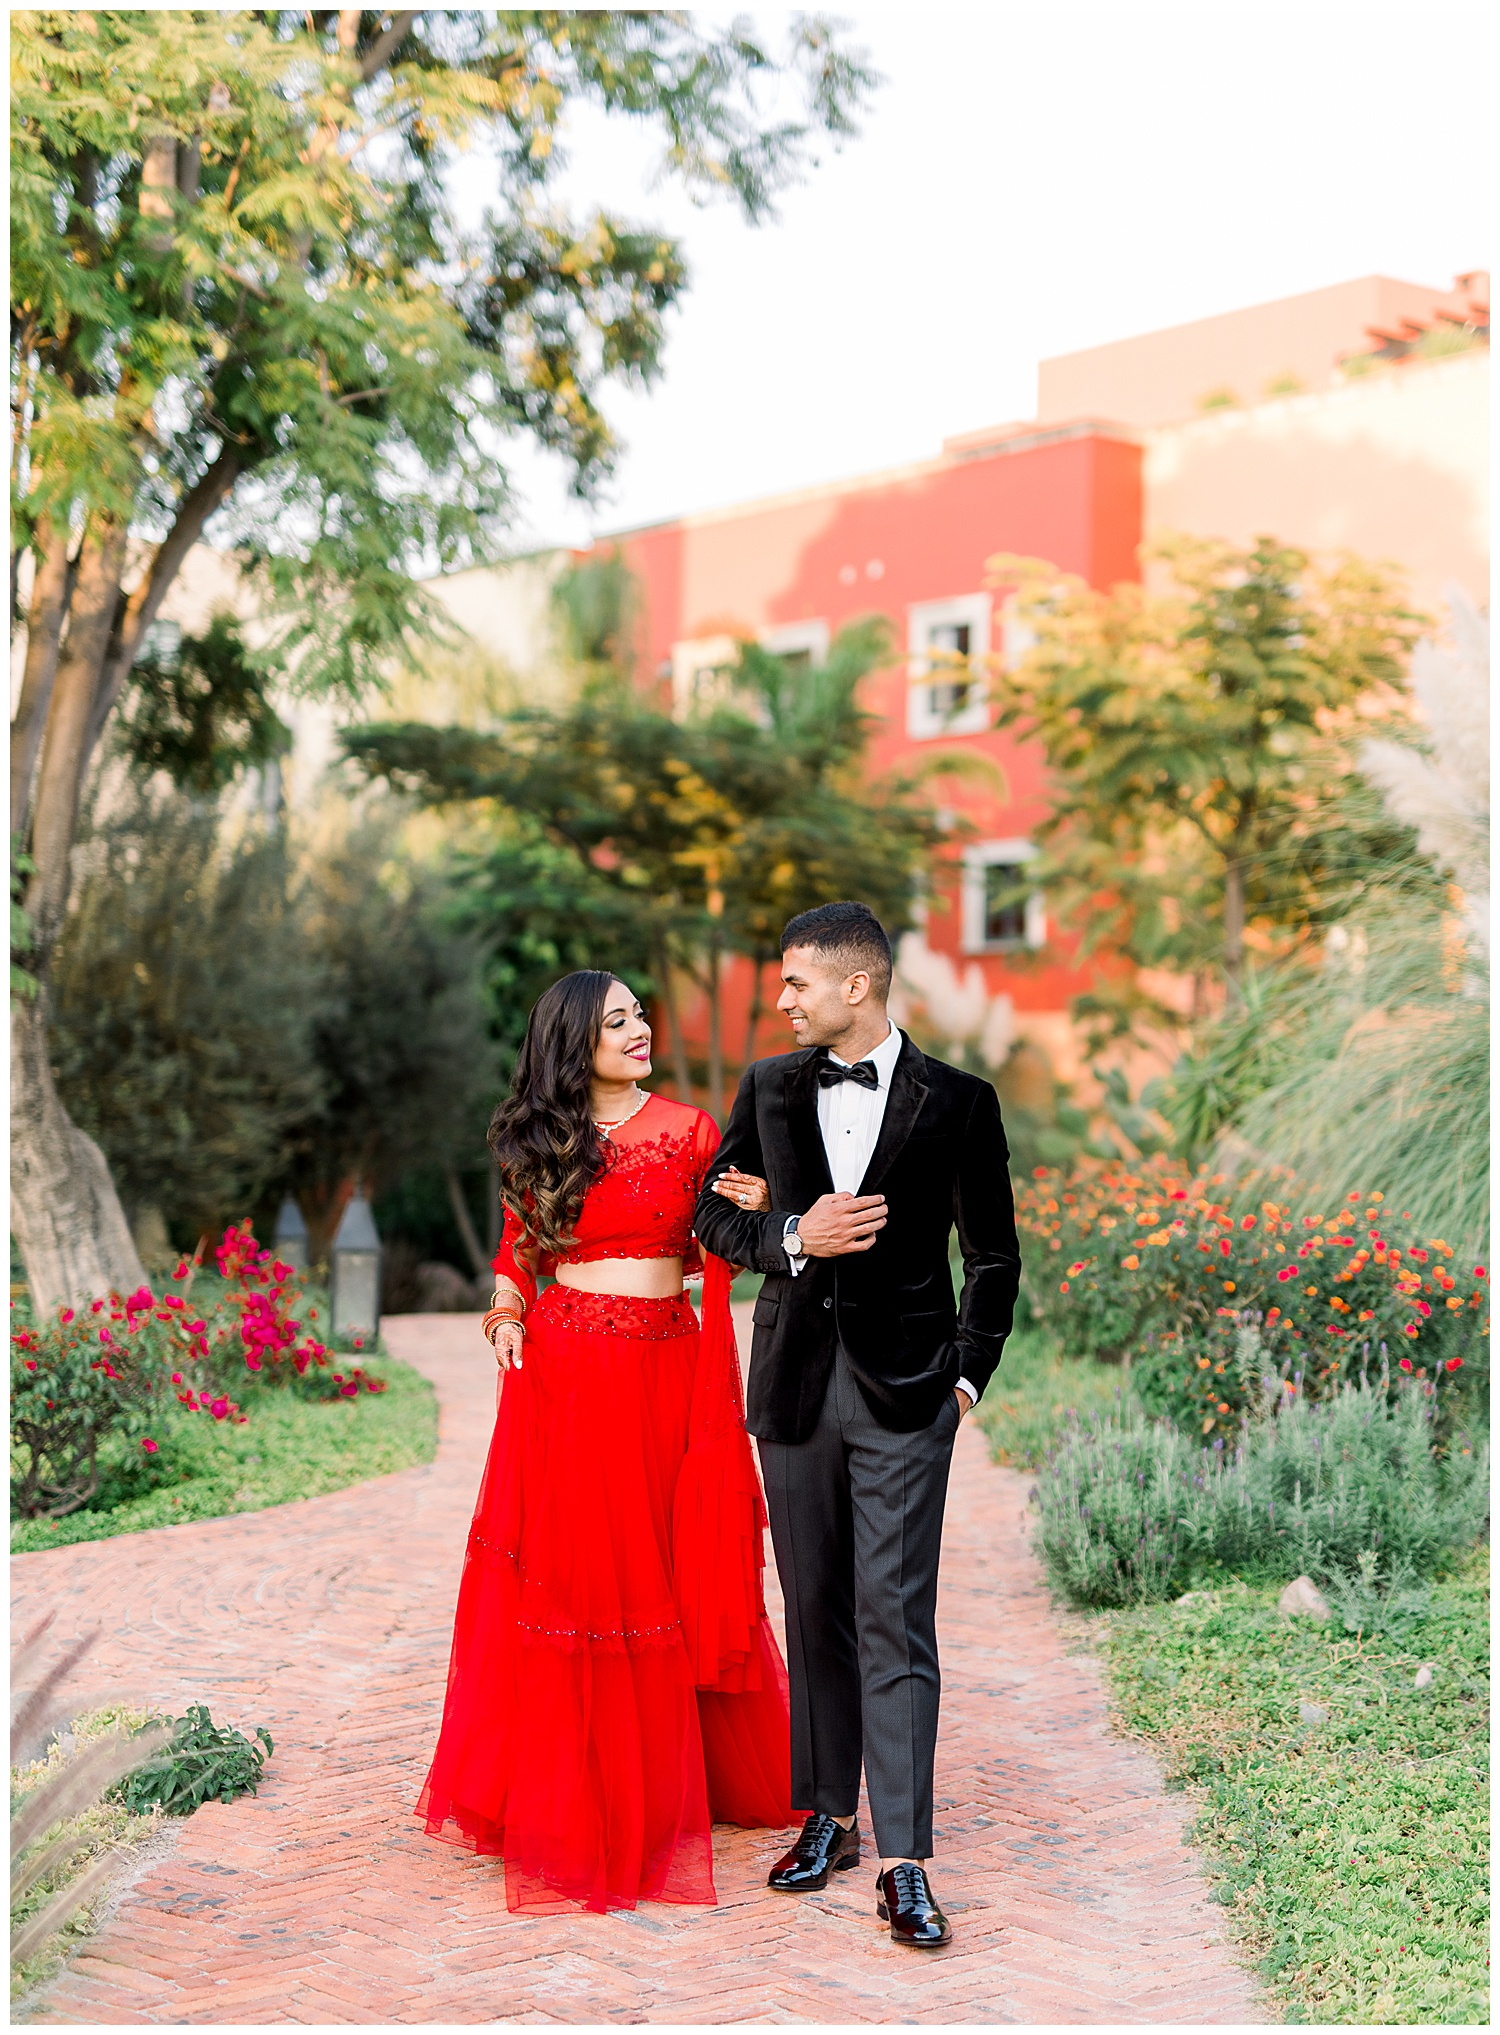 Janine_Licare_Photography_San_Francisco_Wedding_Photographer_Carneros_Tyge_Williams_Sonoma_Napa_0137.jpg